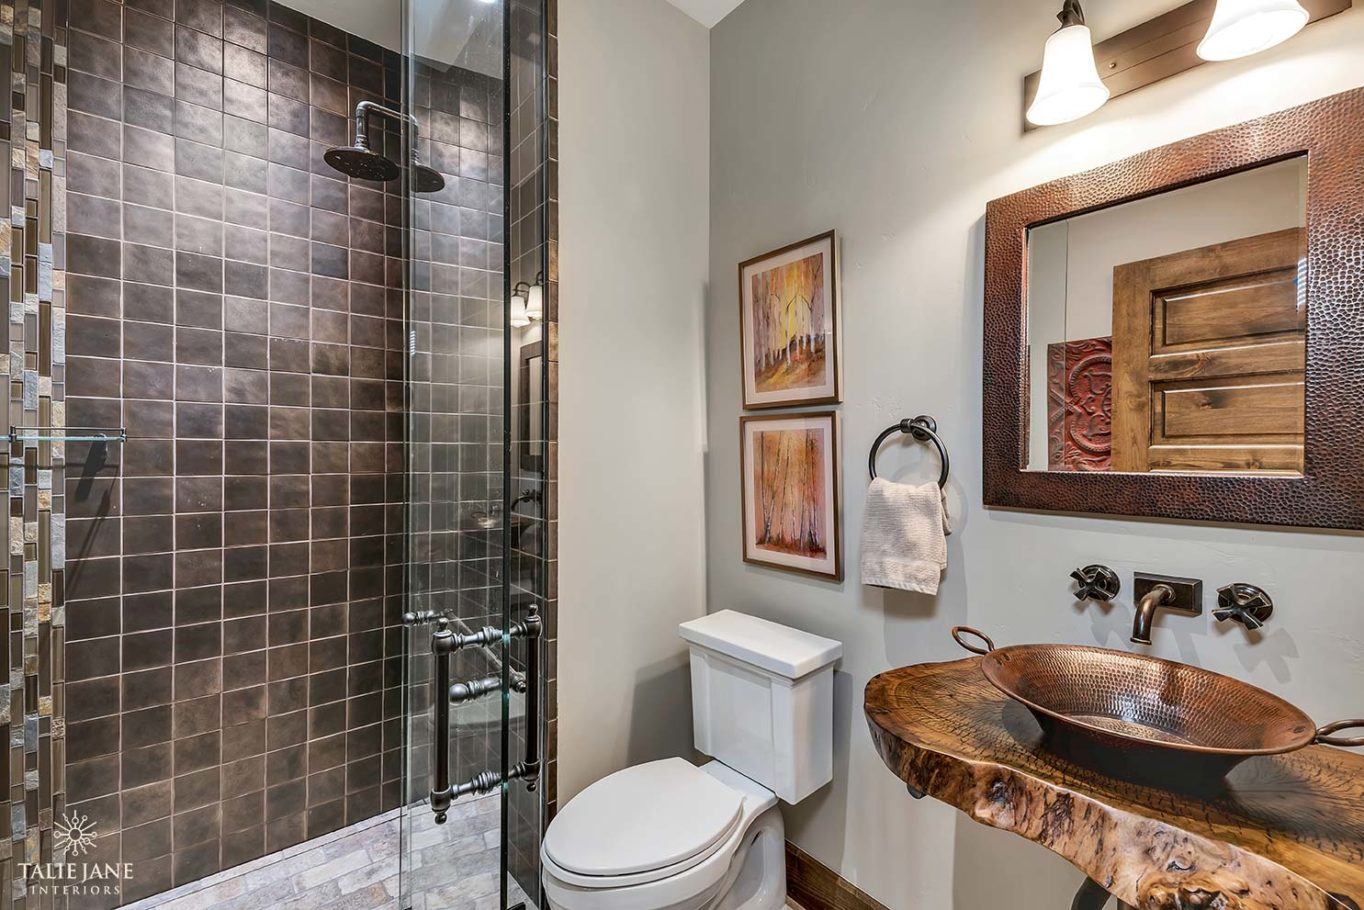 Bathroom interior design - Talie Jane Interiors